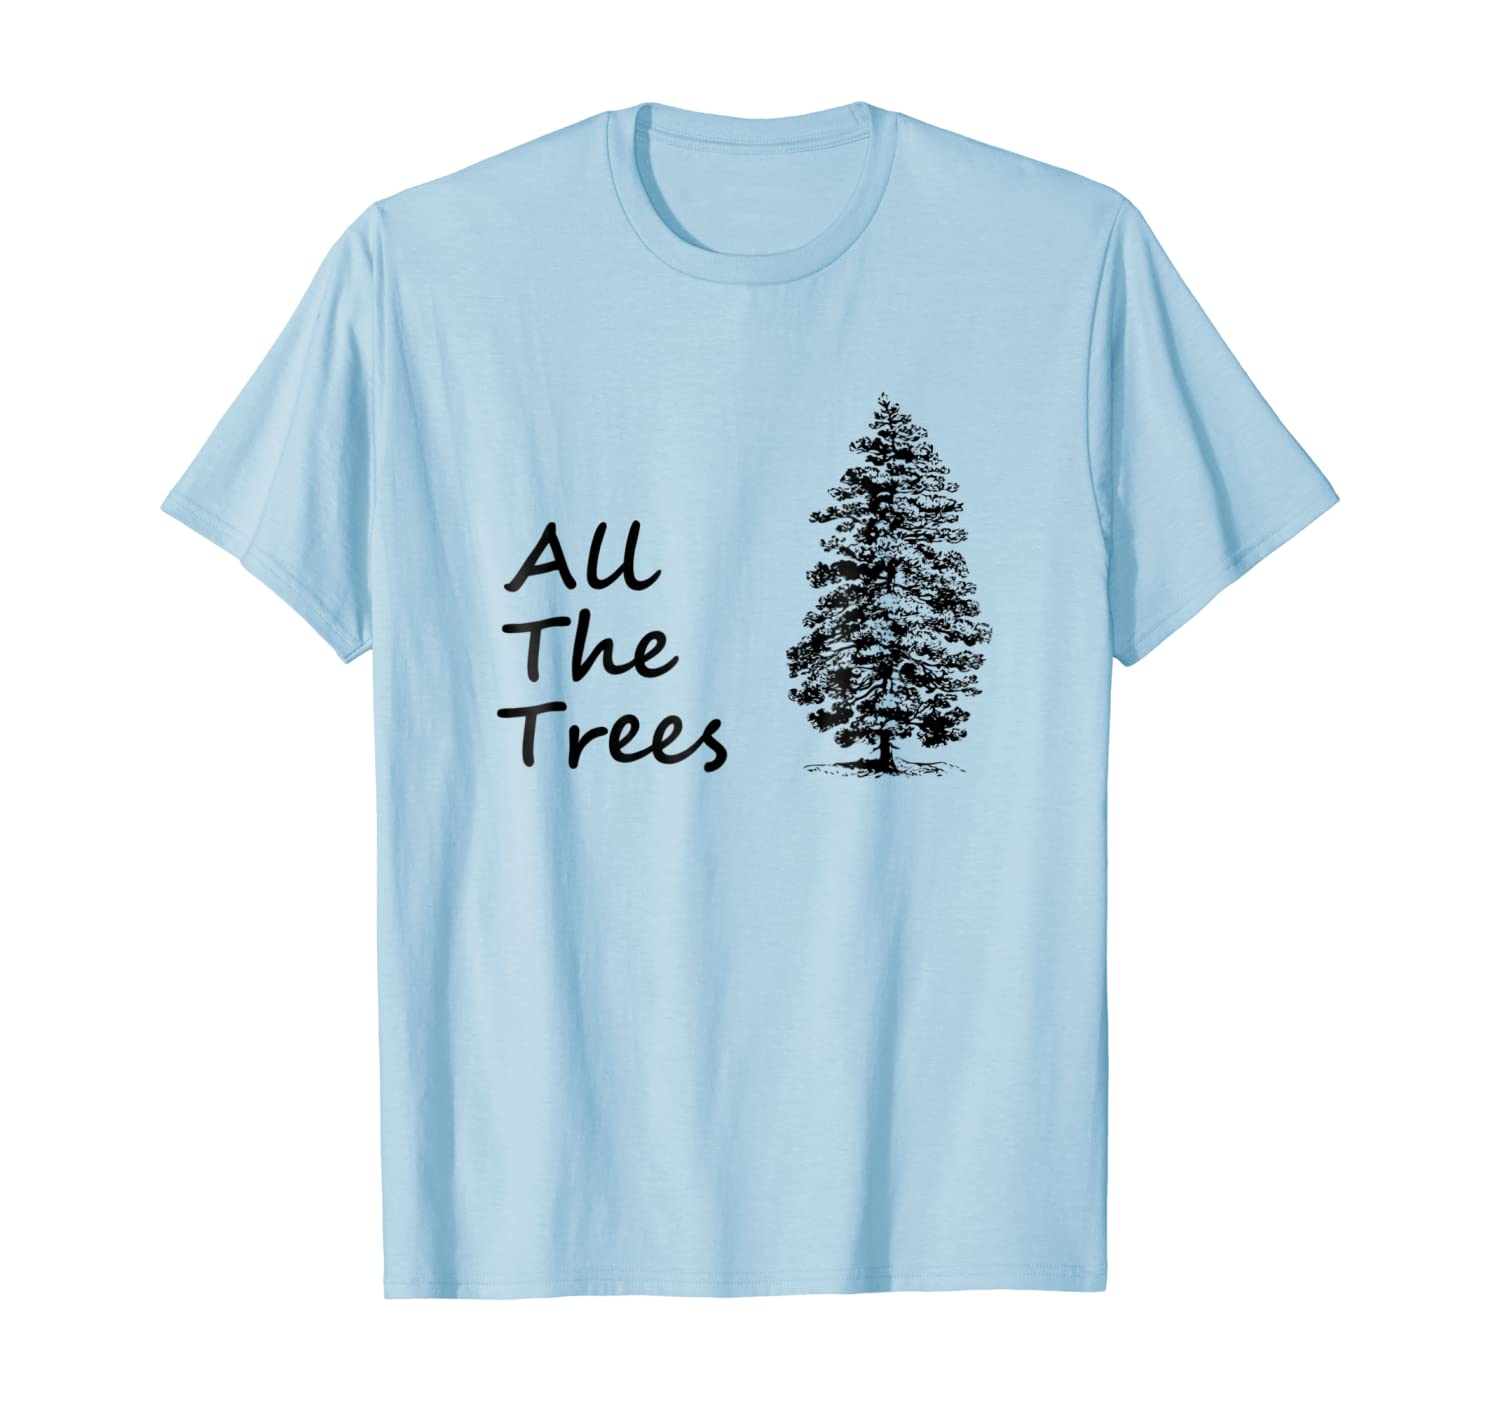 All the trees nature shirt for Men, Woman, Children